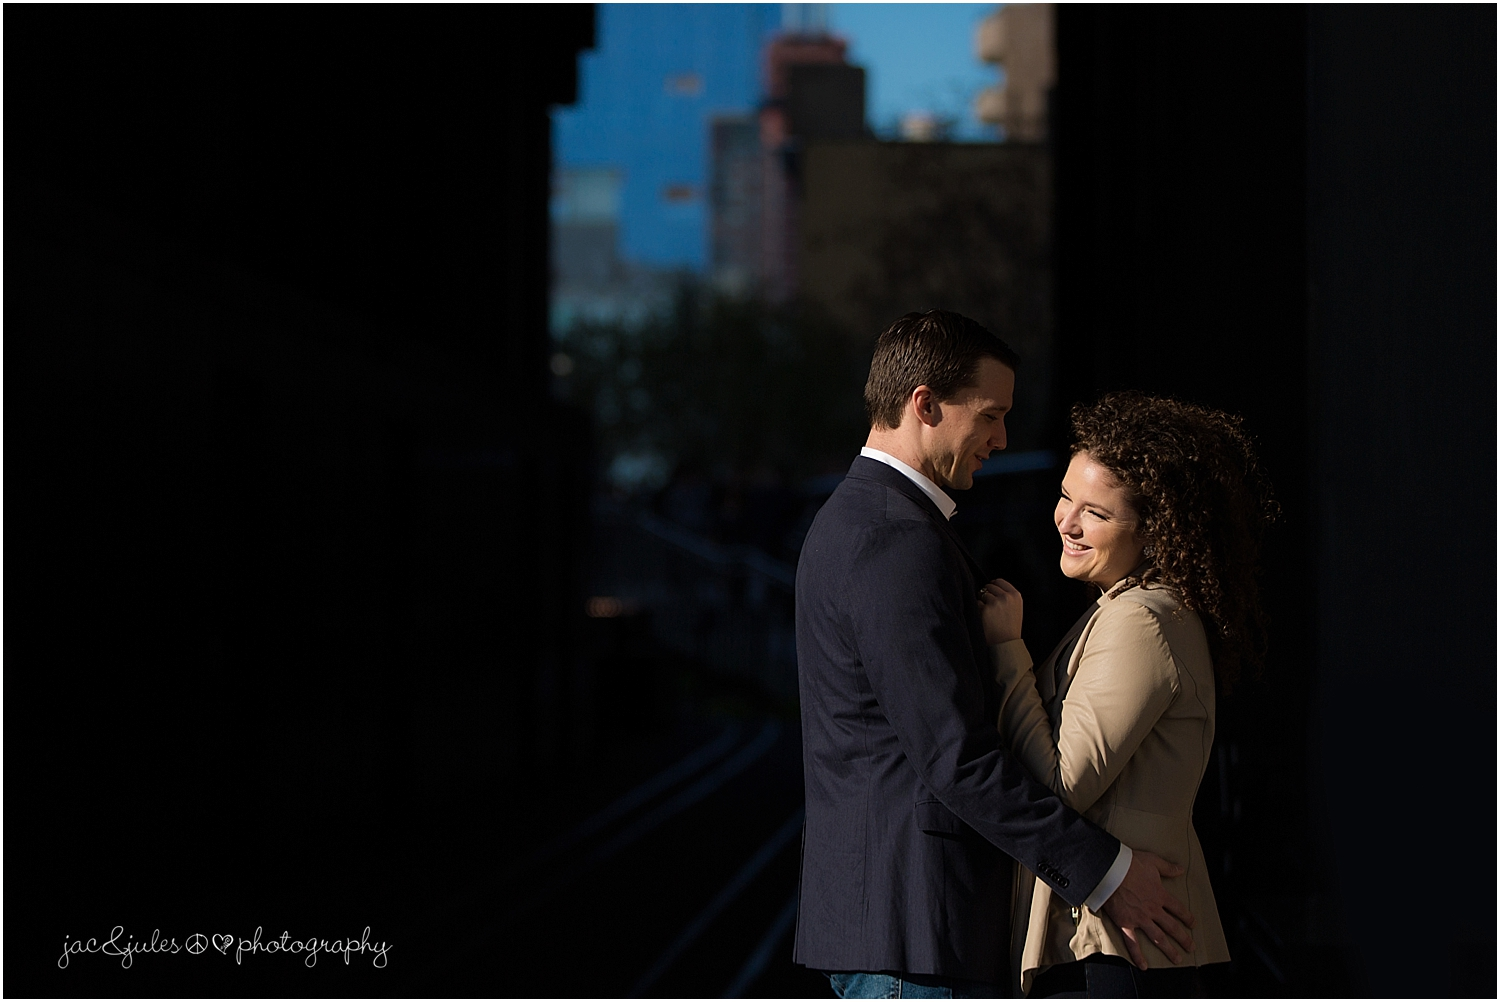 jacnjules photographs engagement in NYC at the highline